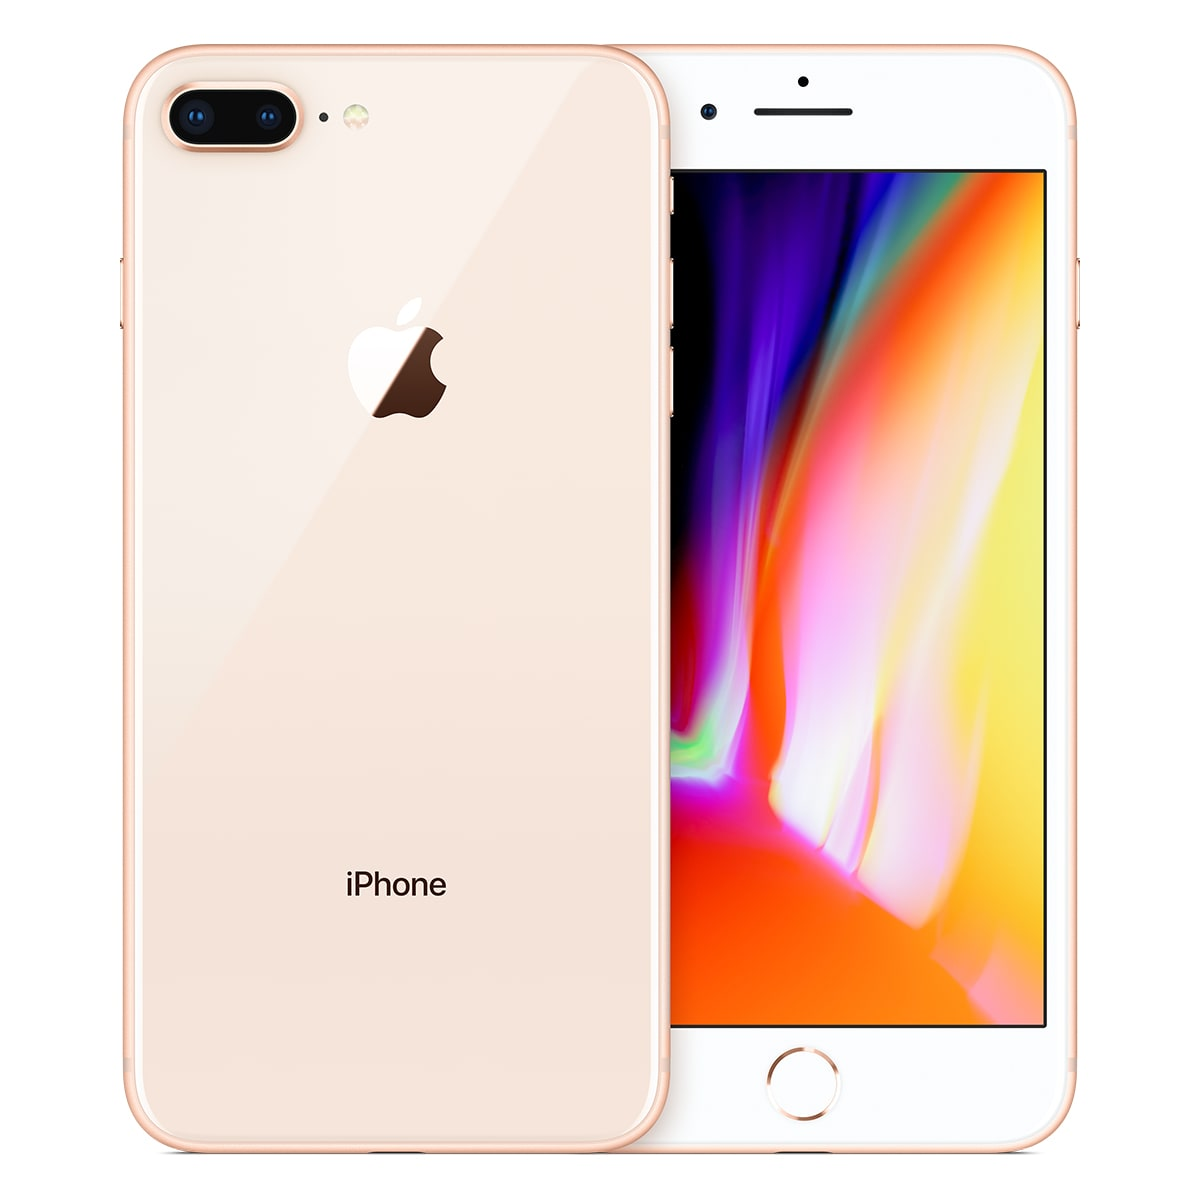 Apple iPhone 8 Plus 64GB Smartphone 13,94cm/5,5'' iOS11 12MP für 789,00 Euro